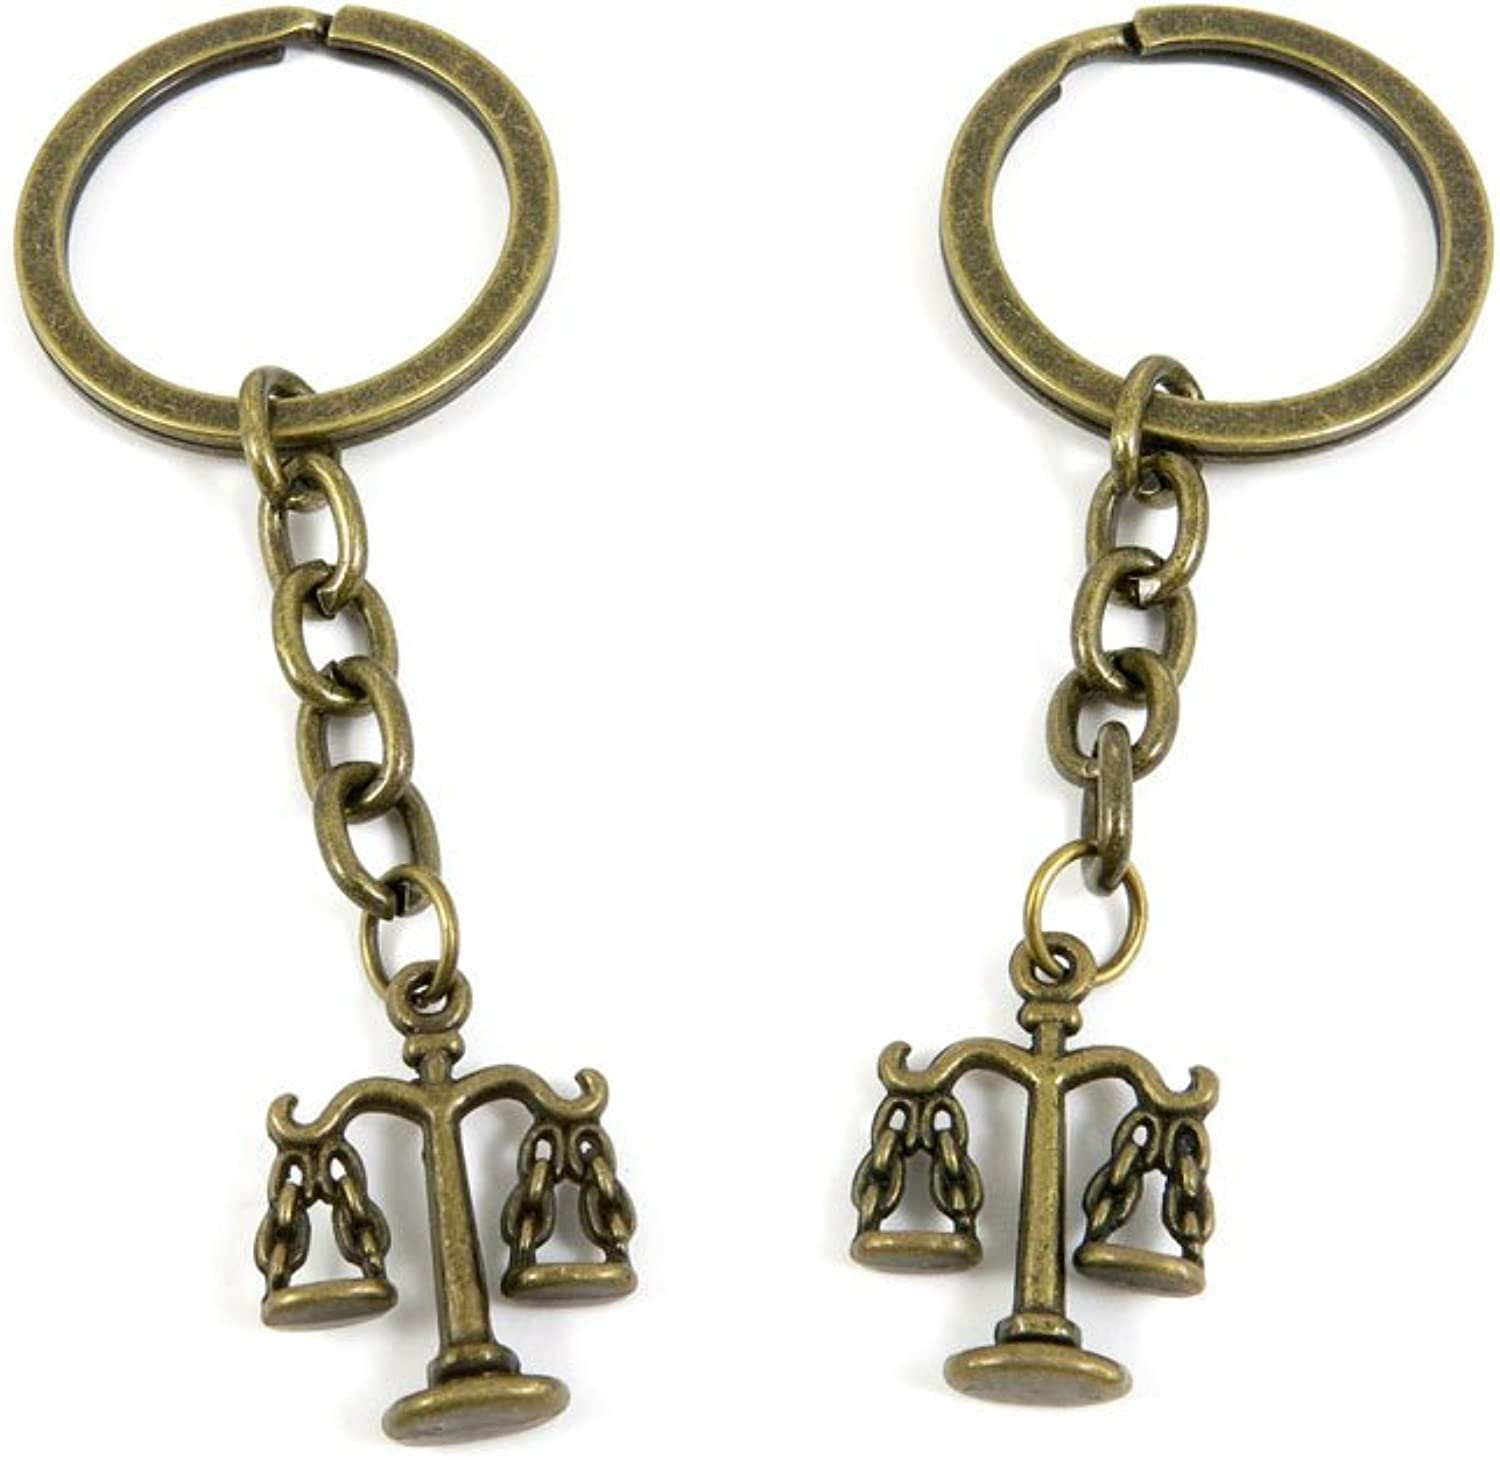 Ancient Bronze Keychain Keyring Key Chain Ring Charms Jewelry Making Handmade K4DO5 Libra Scale